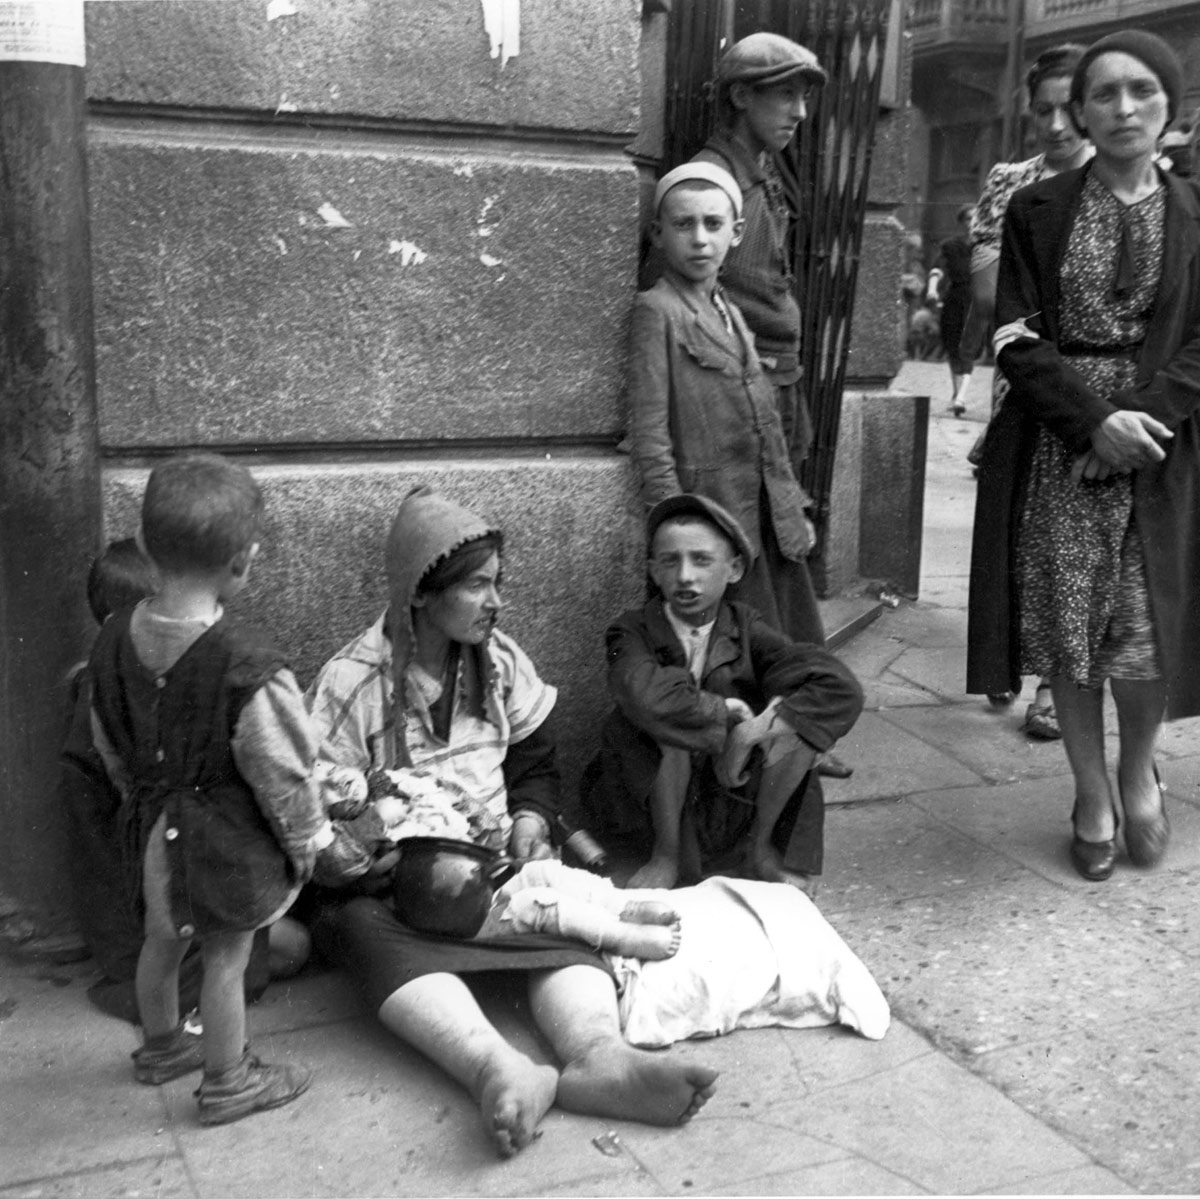 Warsaw, Poland, September 19, 1941, A Woman with a Baby, Begging in the Ghetto